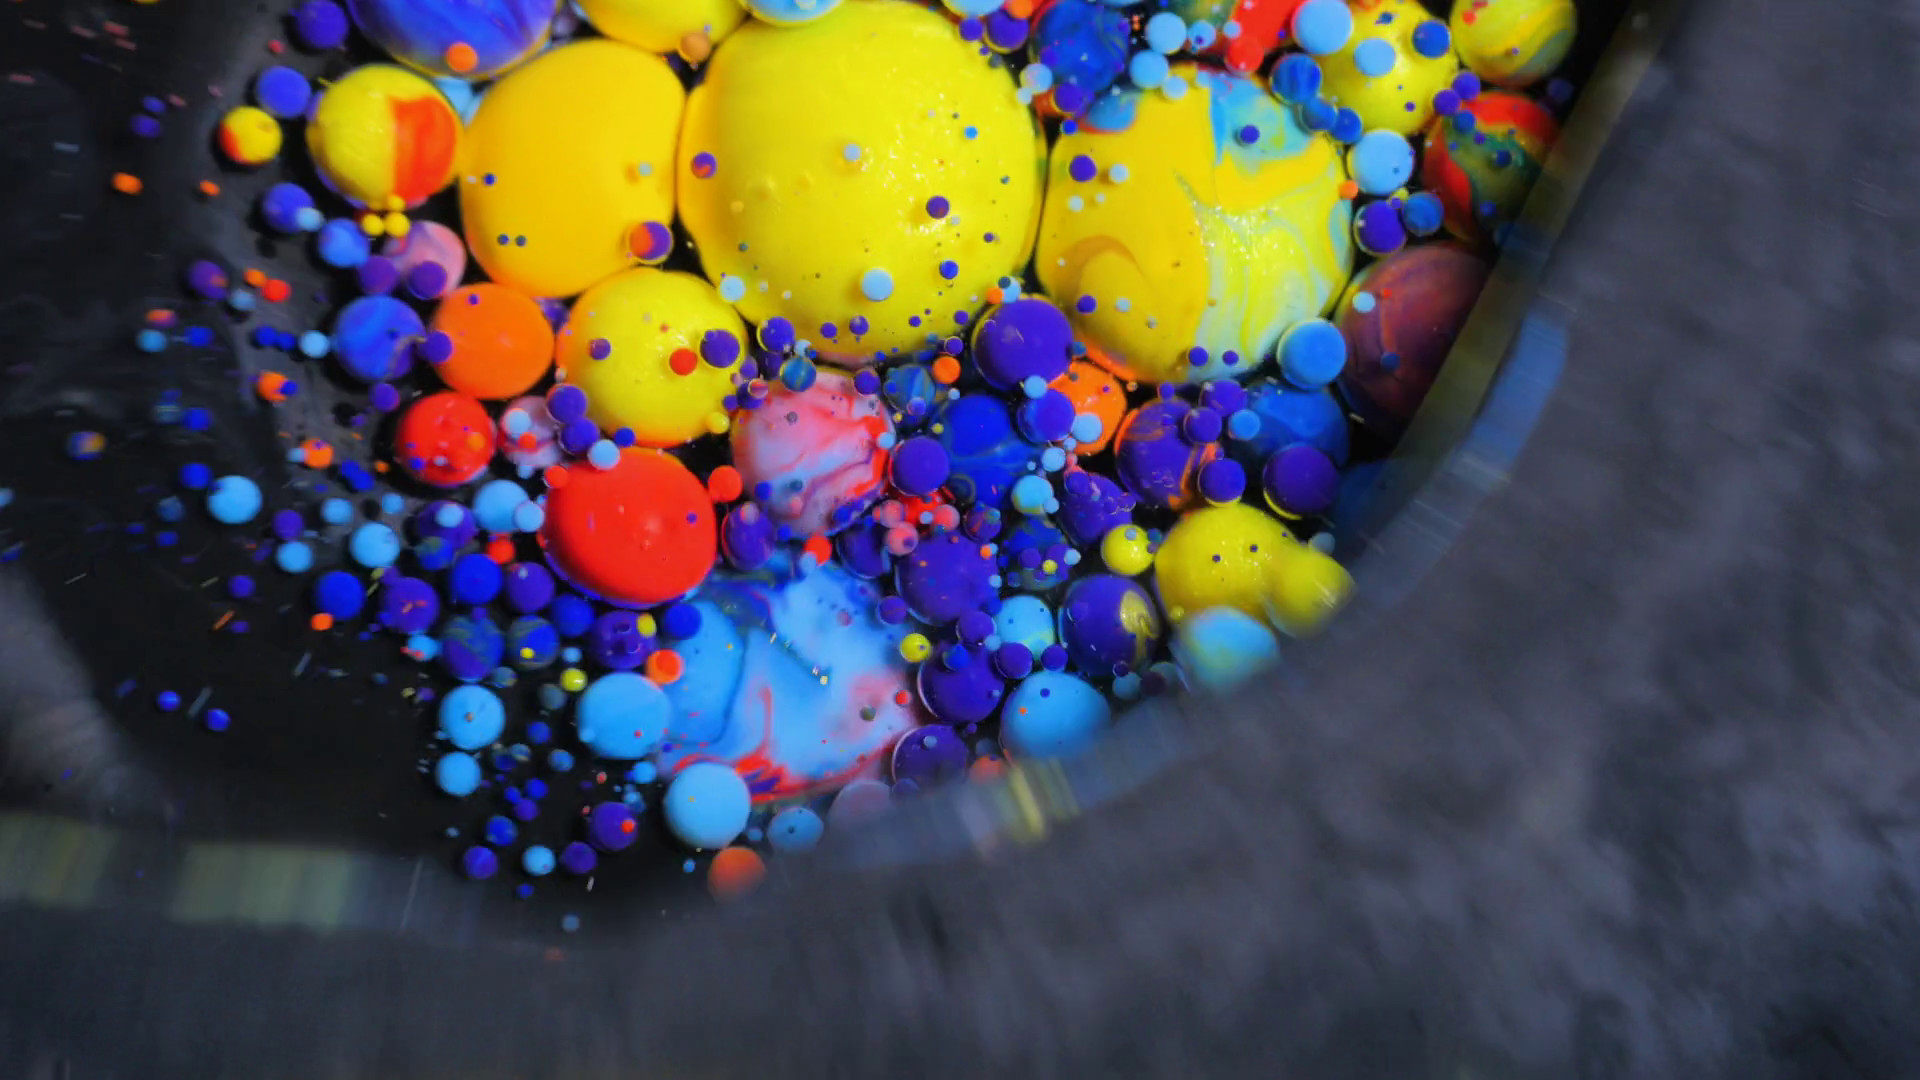 Stream Of Colorful Bubbles Moving On Paint Surface - Bead - HD Wallpaper